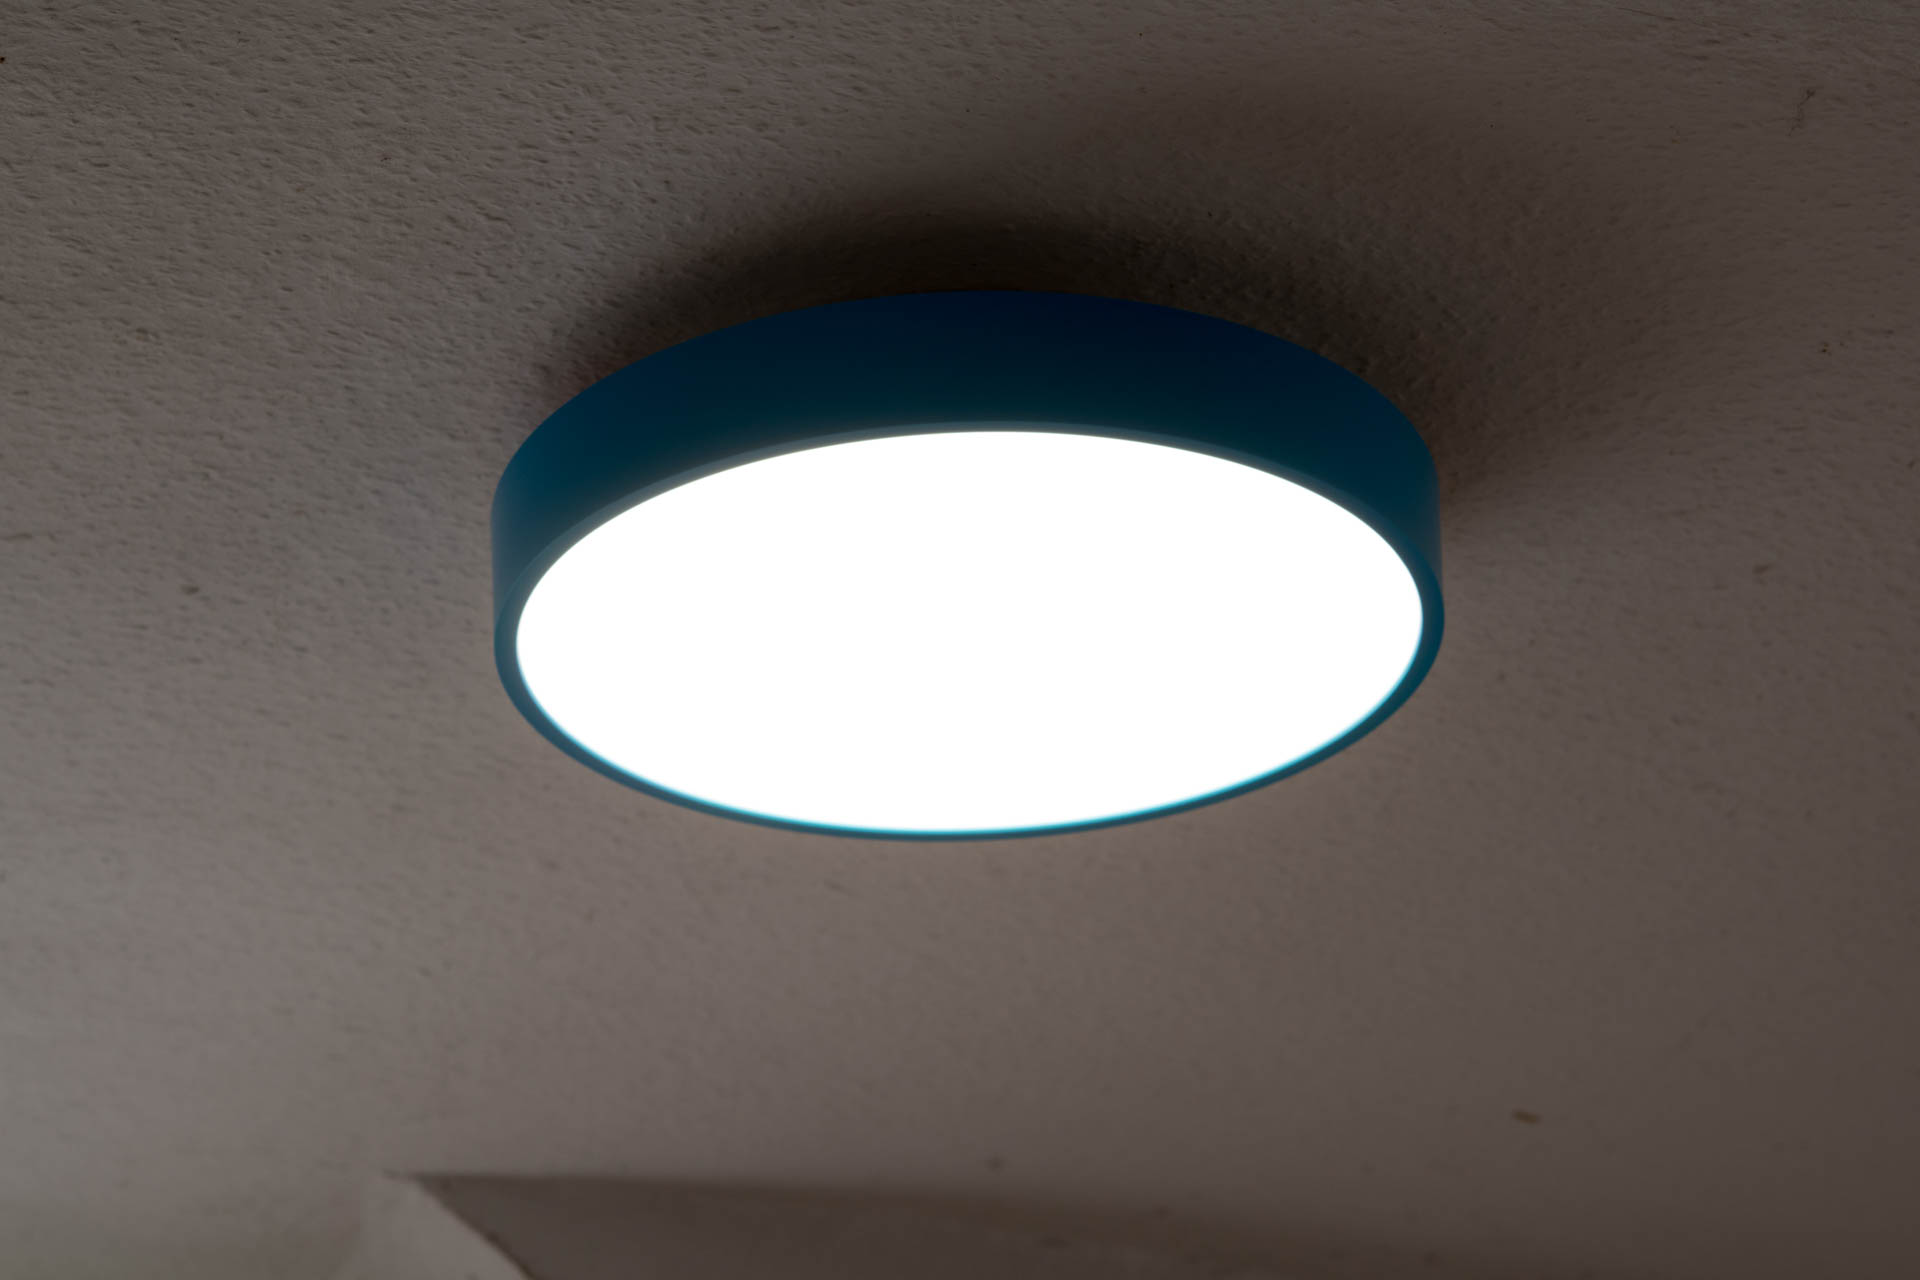 Die Xiaomi Yeelight Smart LED Ceiling Light im Test, inklusive ...